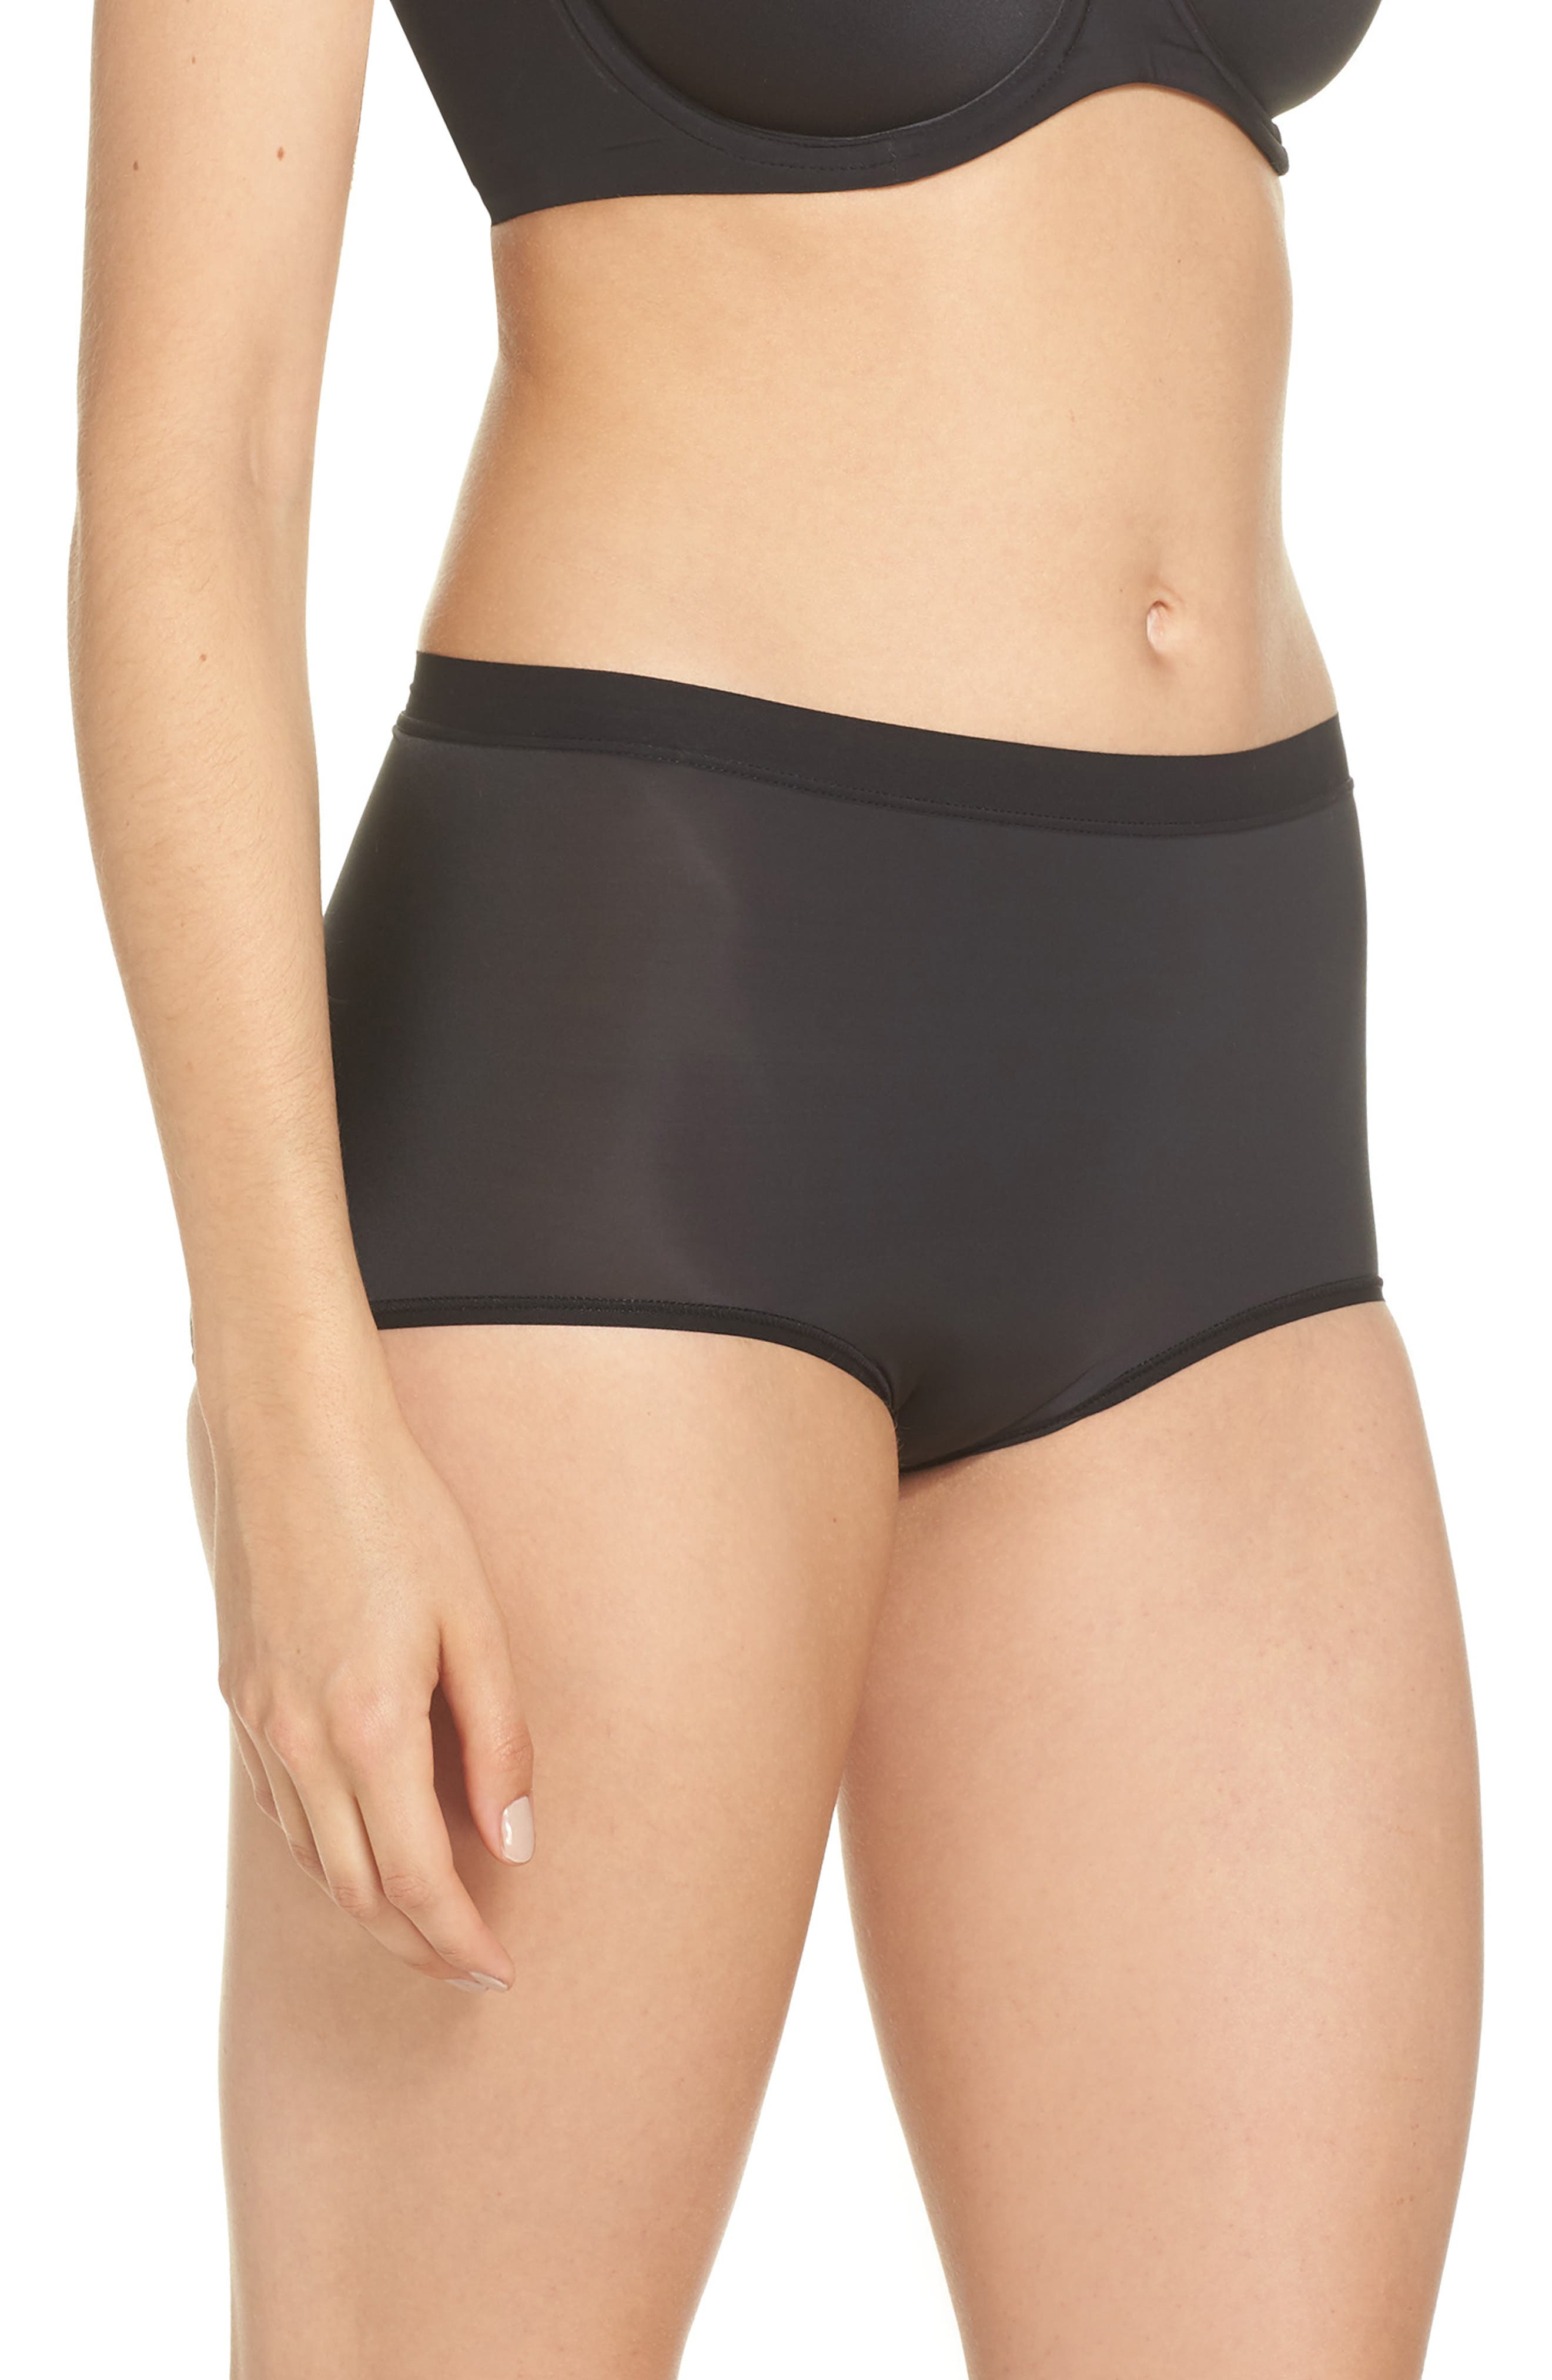 Flawless Comfort Briefs,                             Alternate thumbnail 3, color,                             BLACK